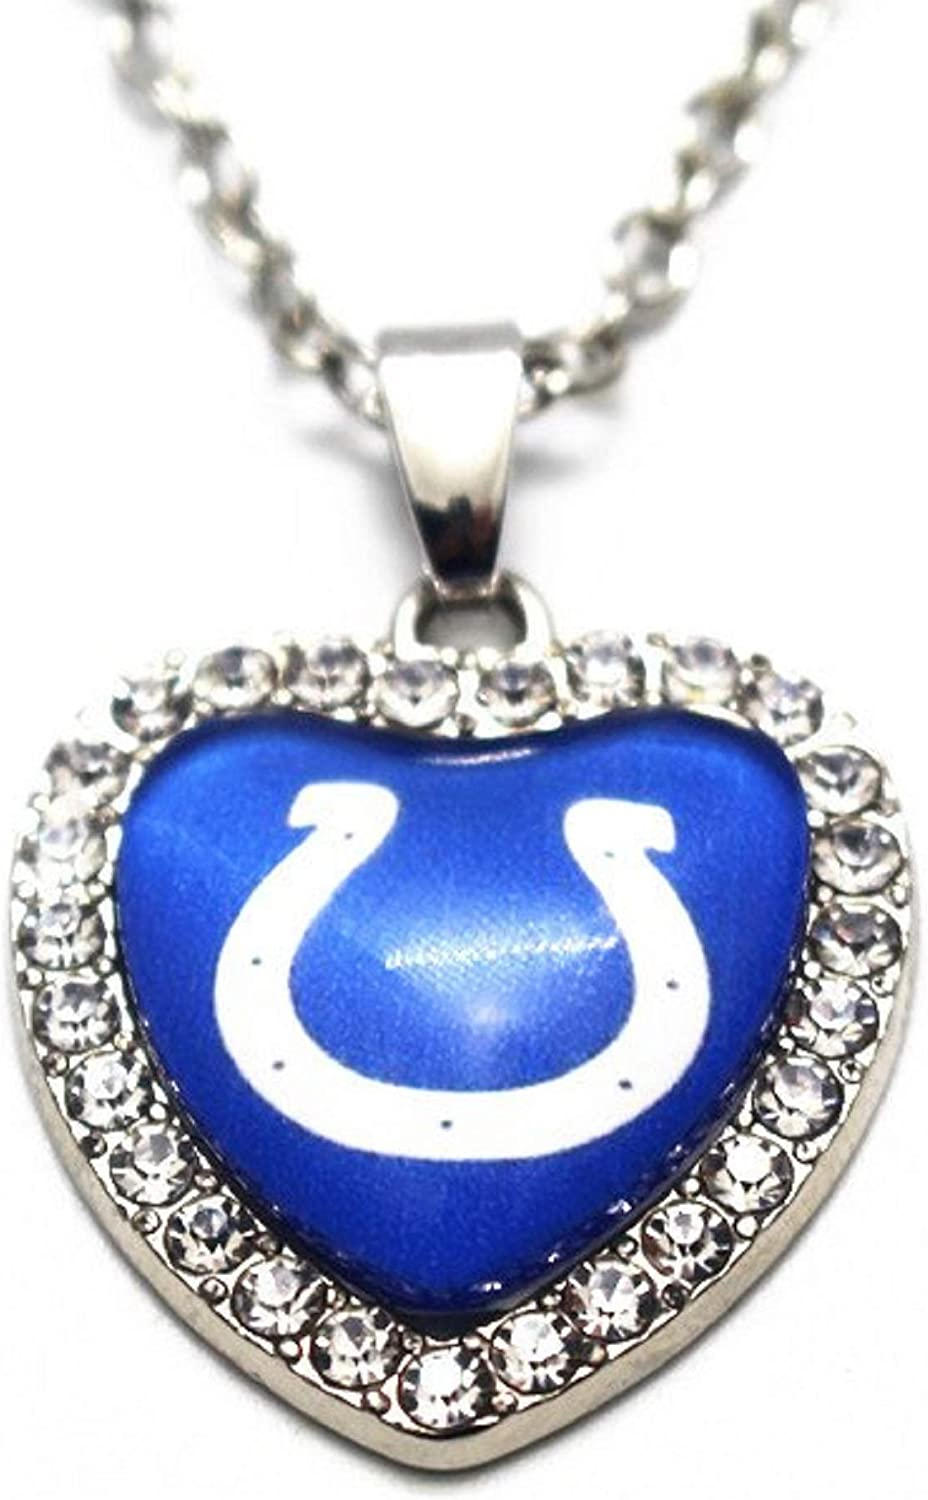 BAS Indianapolis Colts Rhinestone Glass Heart Necklace 20 Inch Alloy Chain